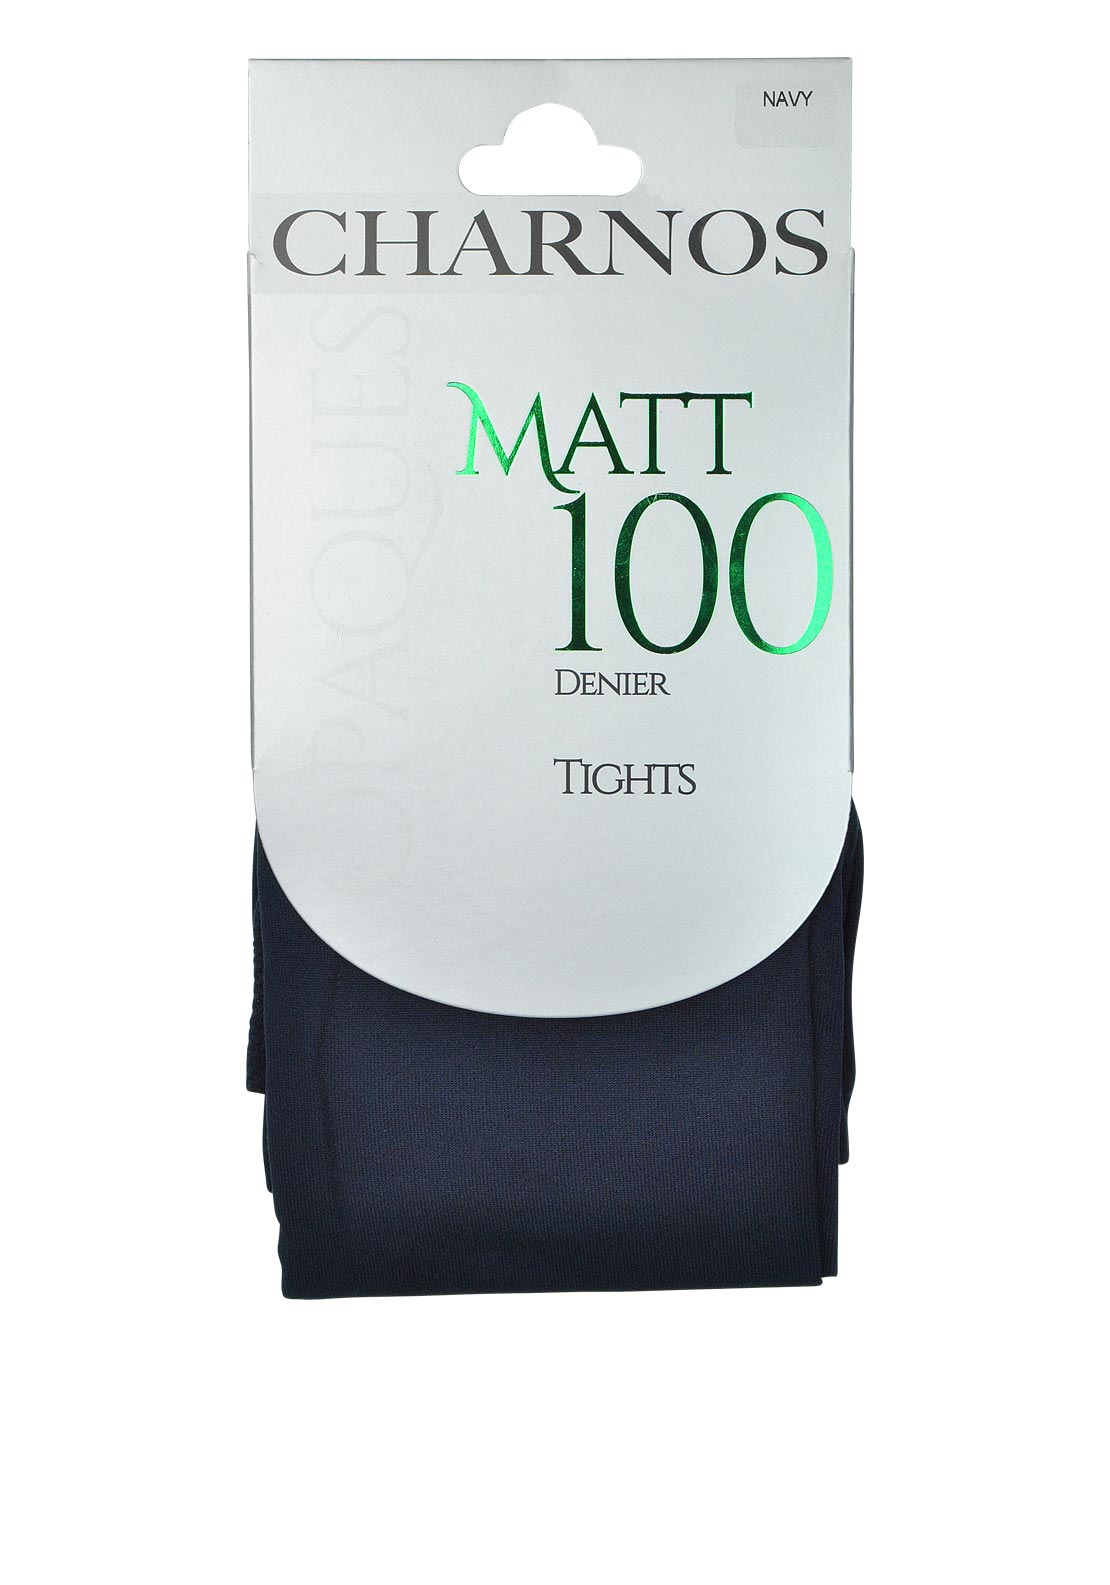 Charnos Opaques Matt 100 Denier Tights, Navy